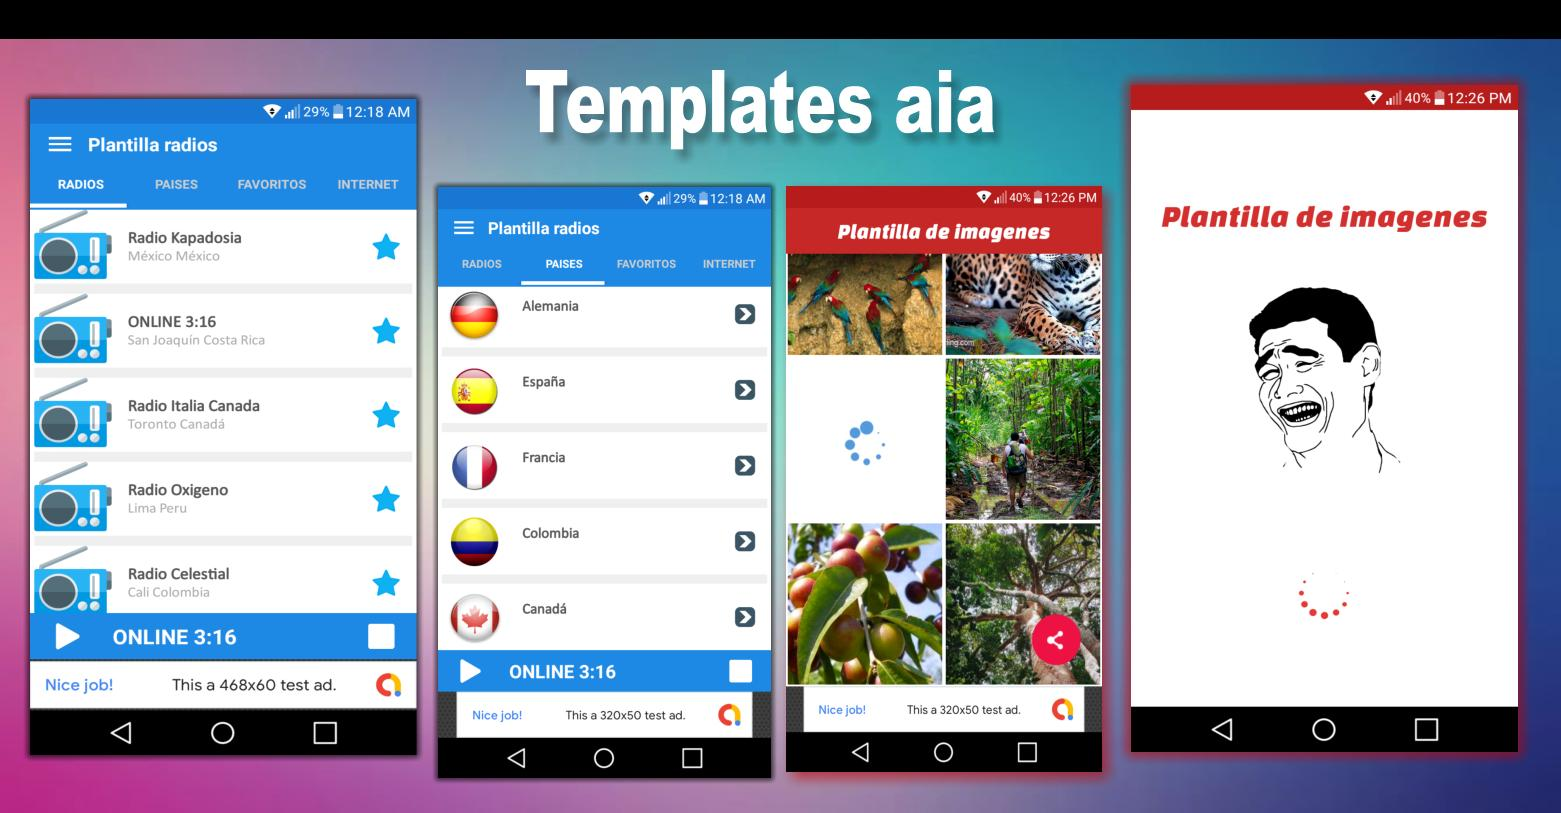 App Inventor aia - Create your app with templates for